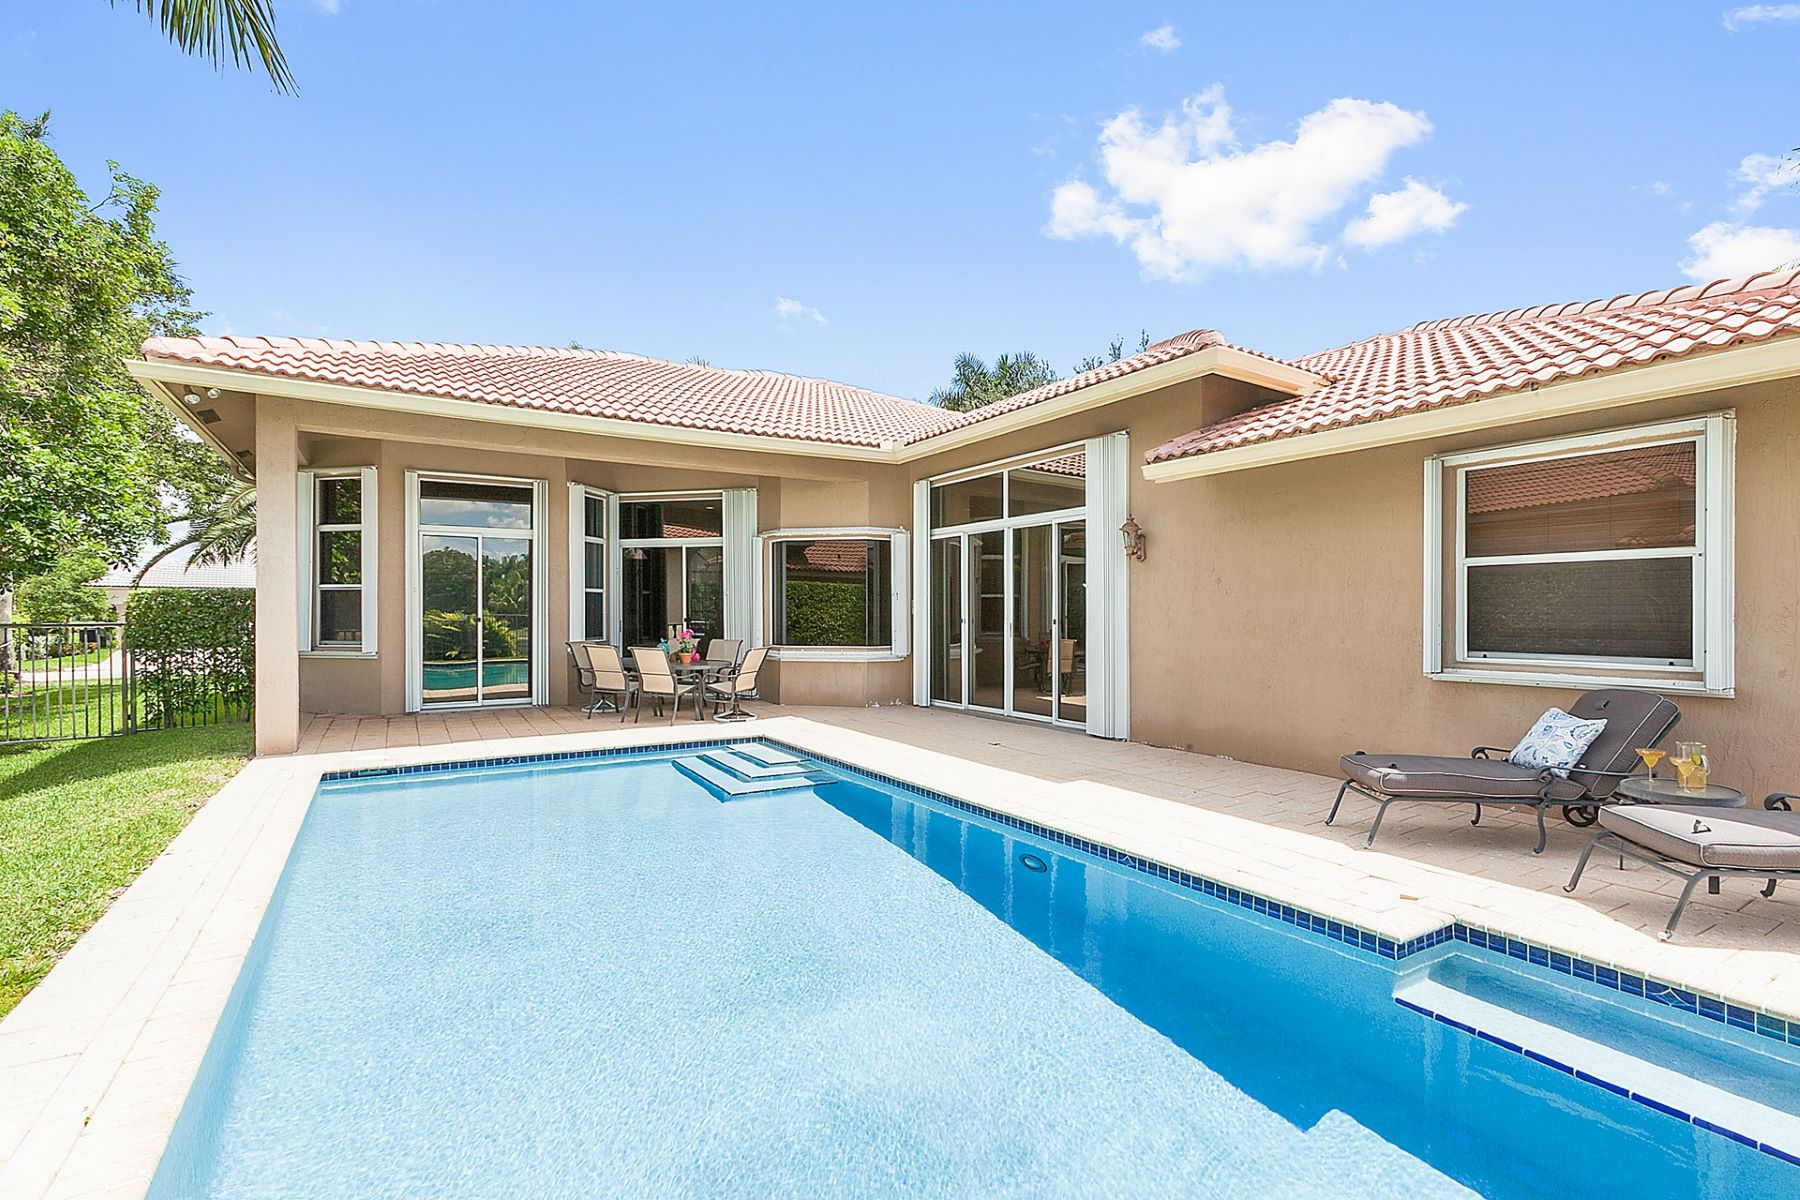 Single Family Home for Sale at 2544 Jardin Terr. Weston, Florida 33327 United States